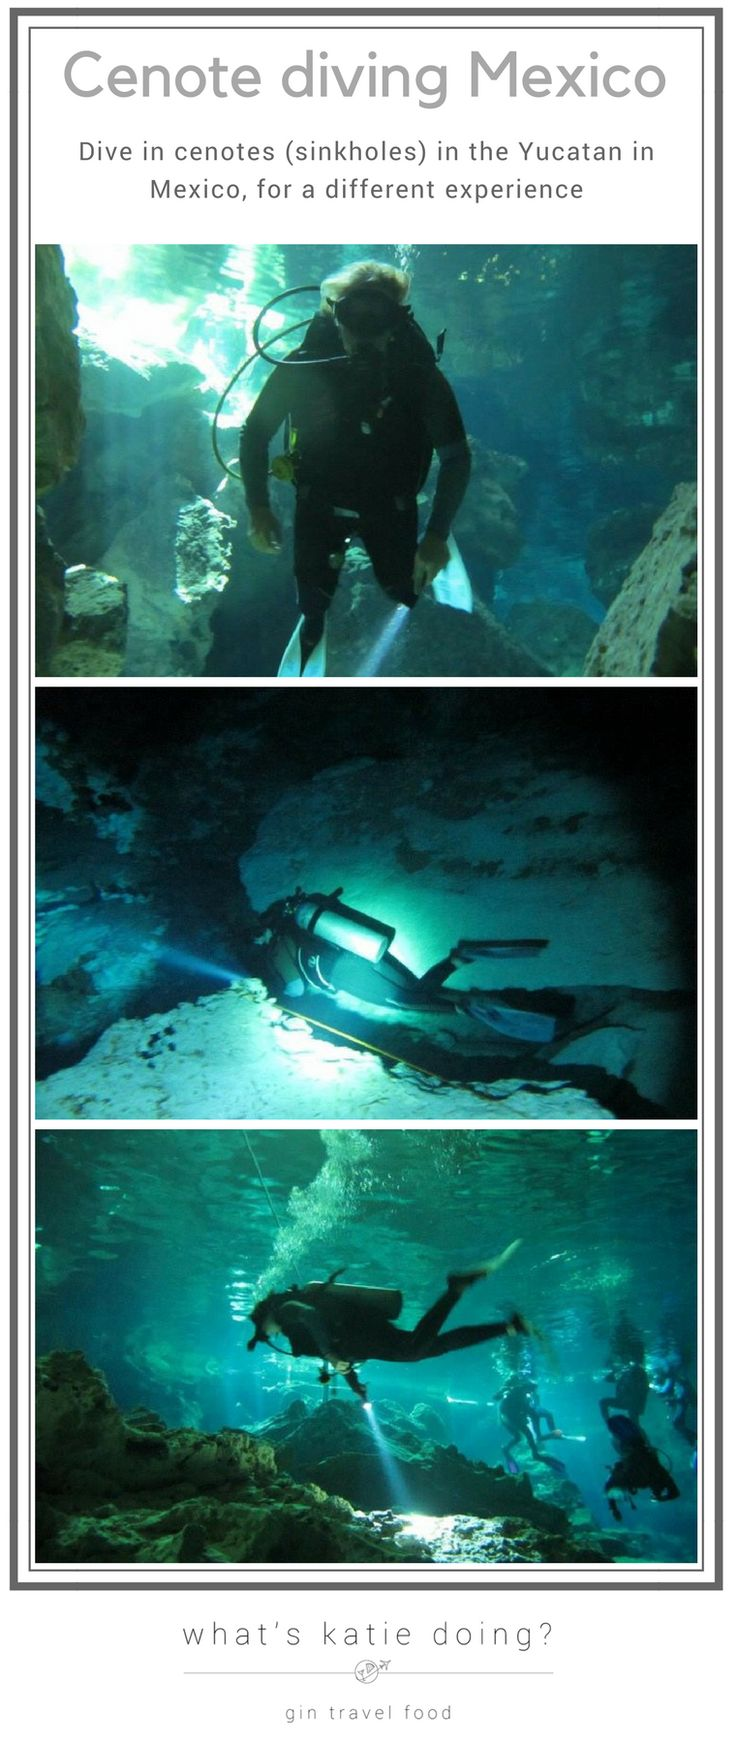 Try something different and dive in a cenote or sinkhole in the Yucatan peninsula in Mexico! #cenote #mexico #yucatan #diving